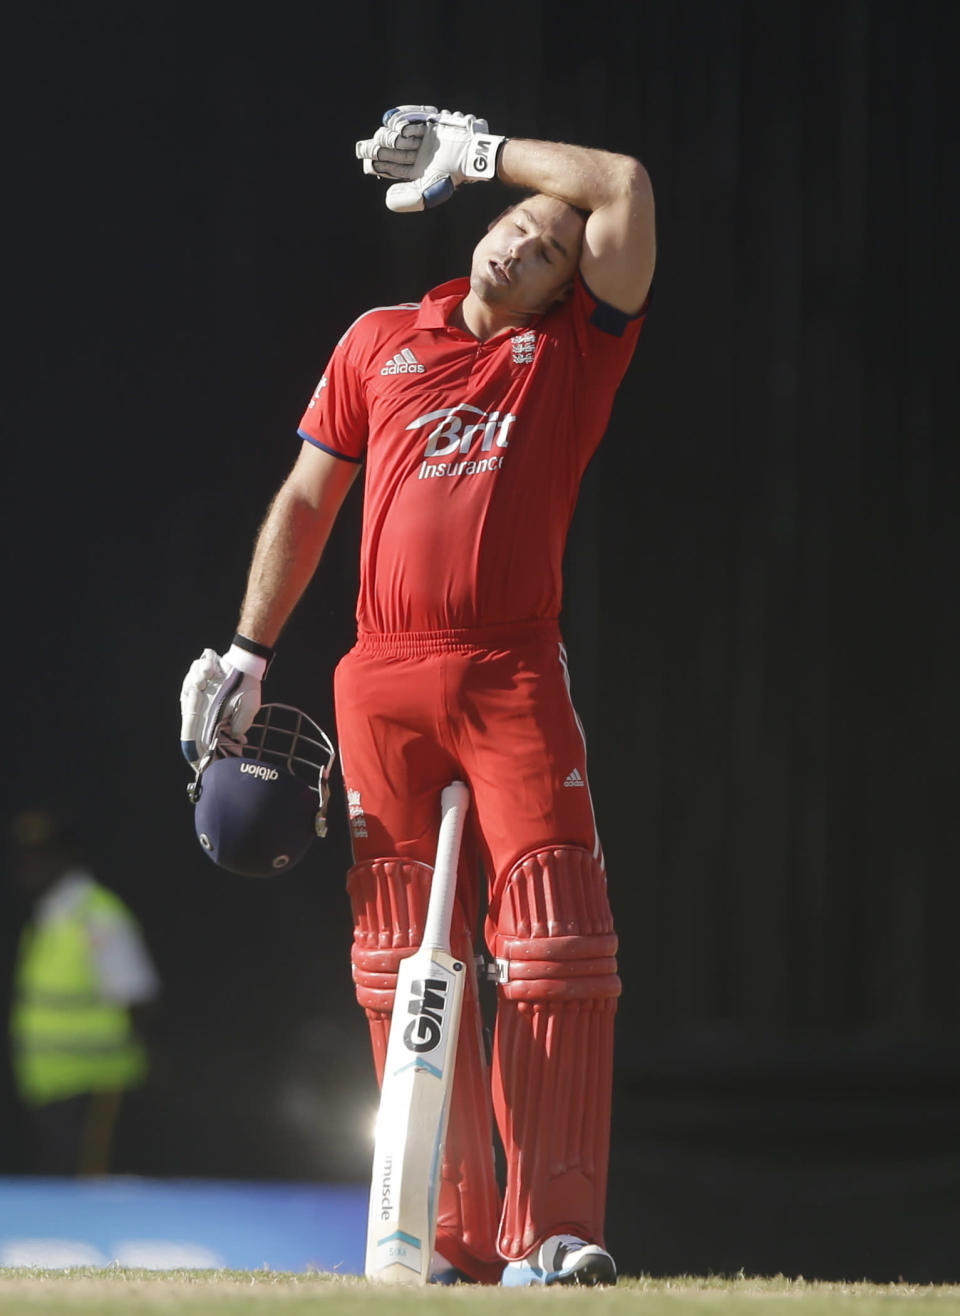 England's Michael Lumb wipes his head after he scored a century with Joe Root during their first one-day international cricket match against West Indies at the Sir Vivian Richards Cricket Ground in St. John's, Antigua, Friday, Feb. 28, 2014. (AP Photo/Ricardo Mazalan)